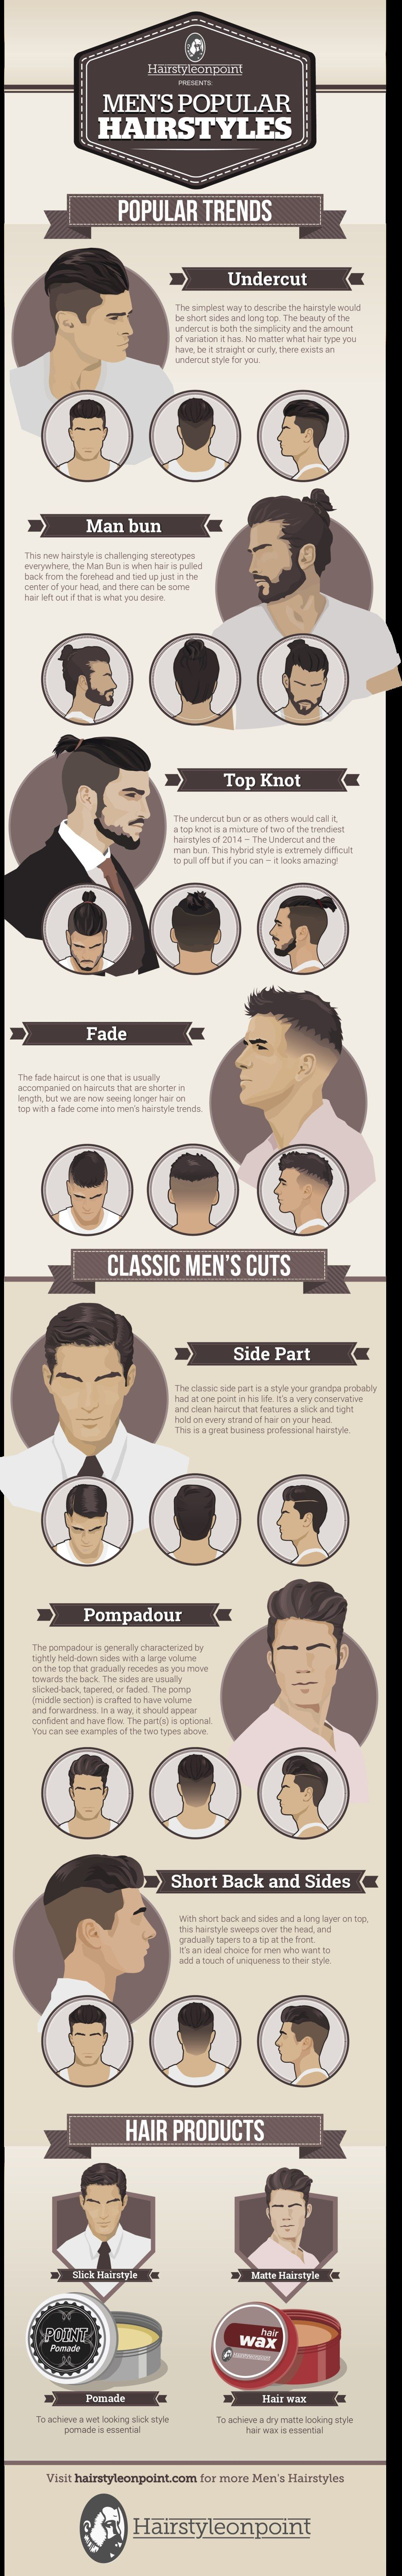 Luckily menus style blog hairstyleonpoint created an amazing chart